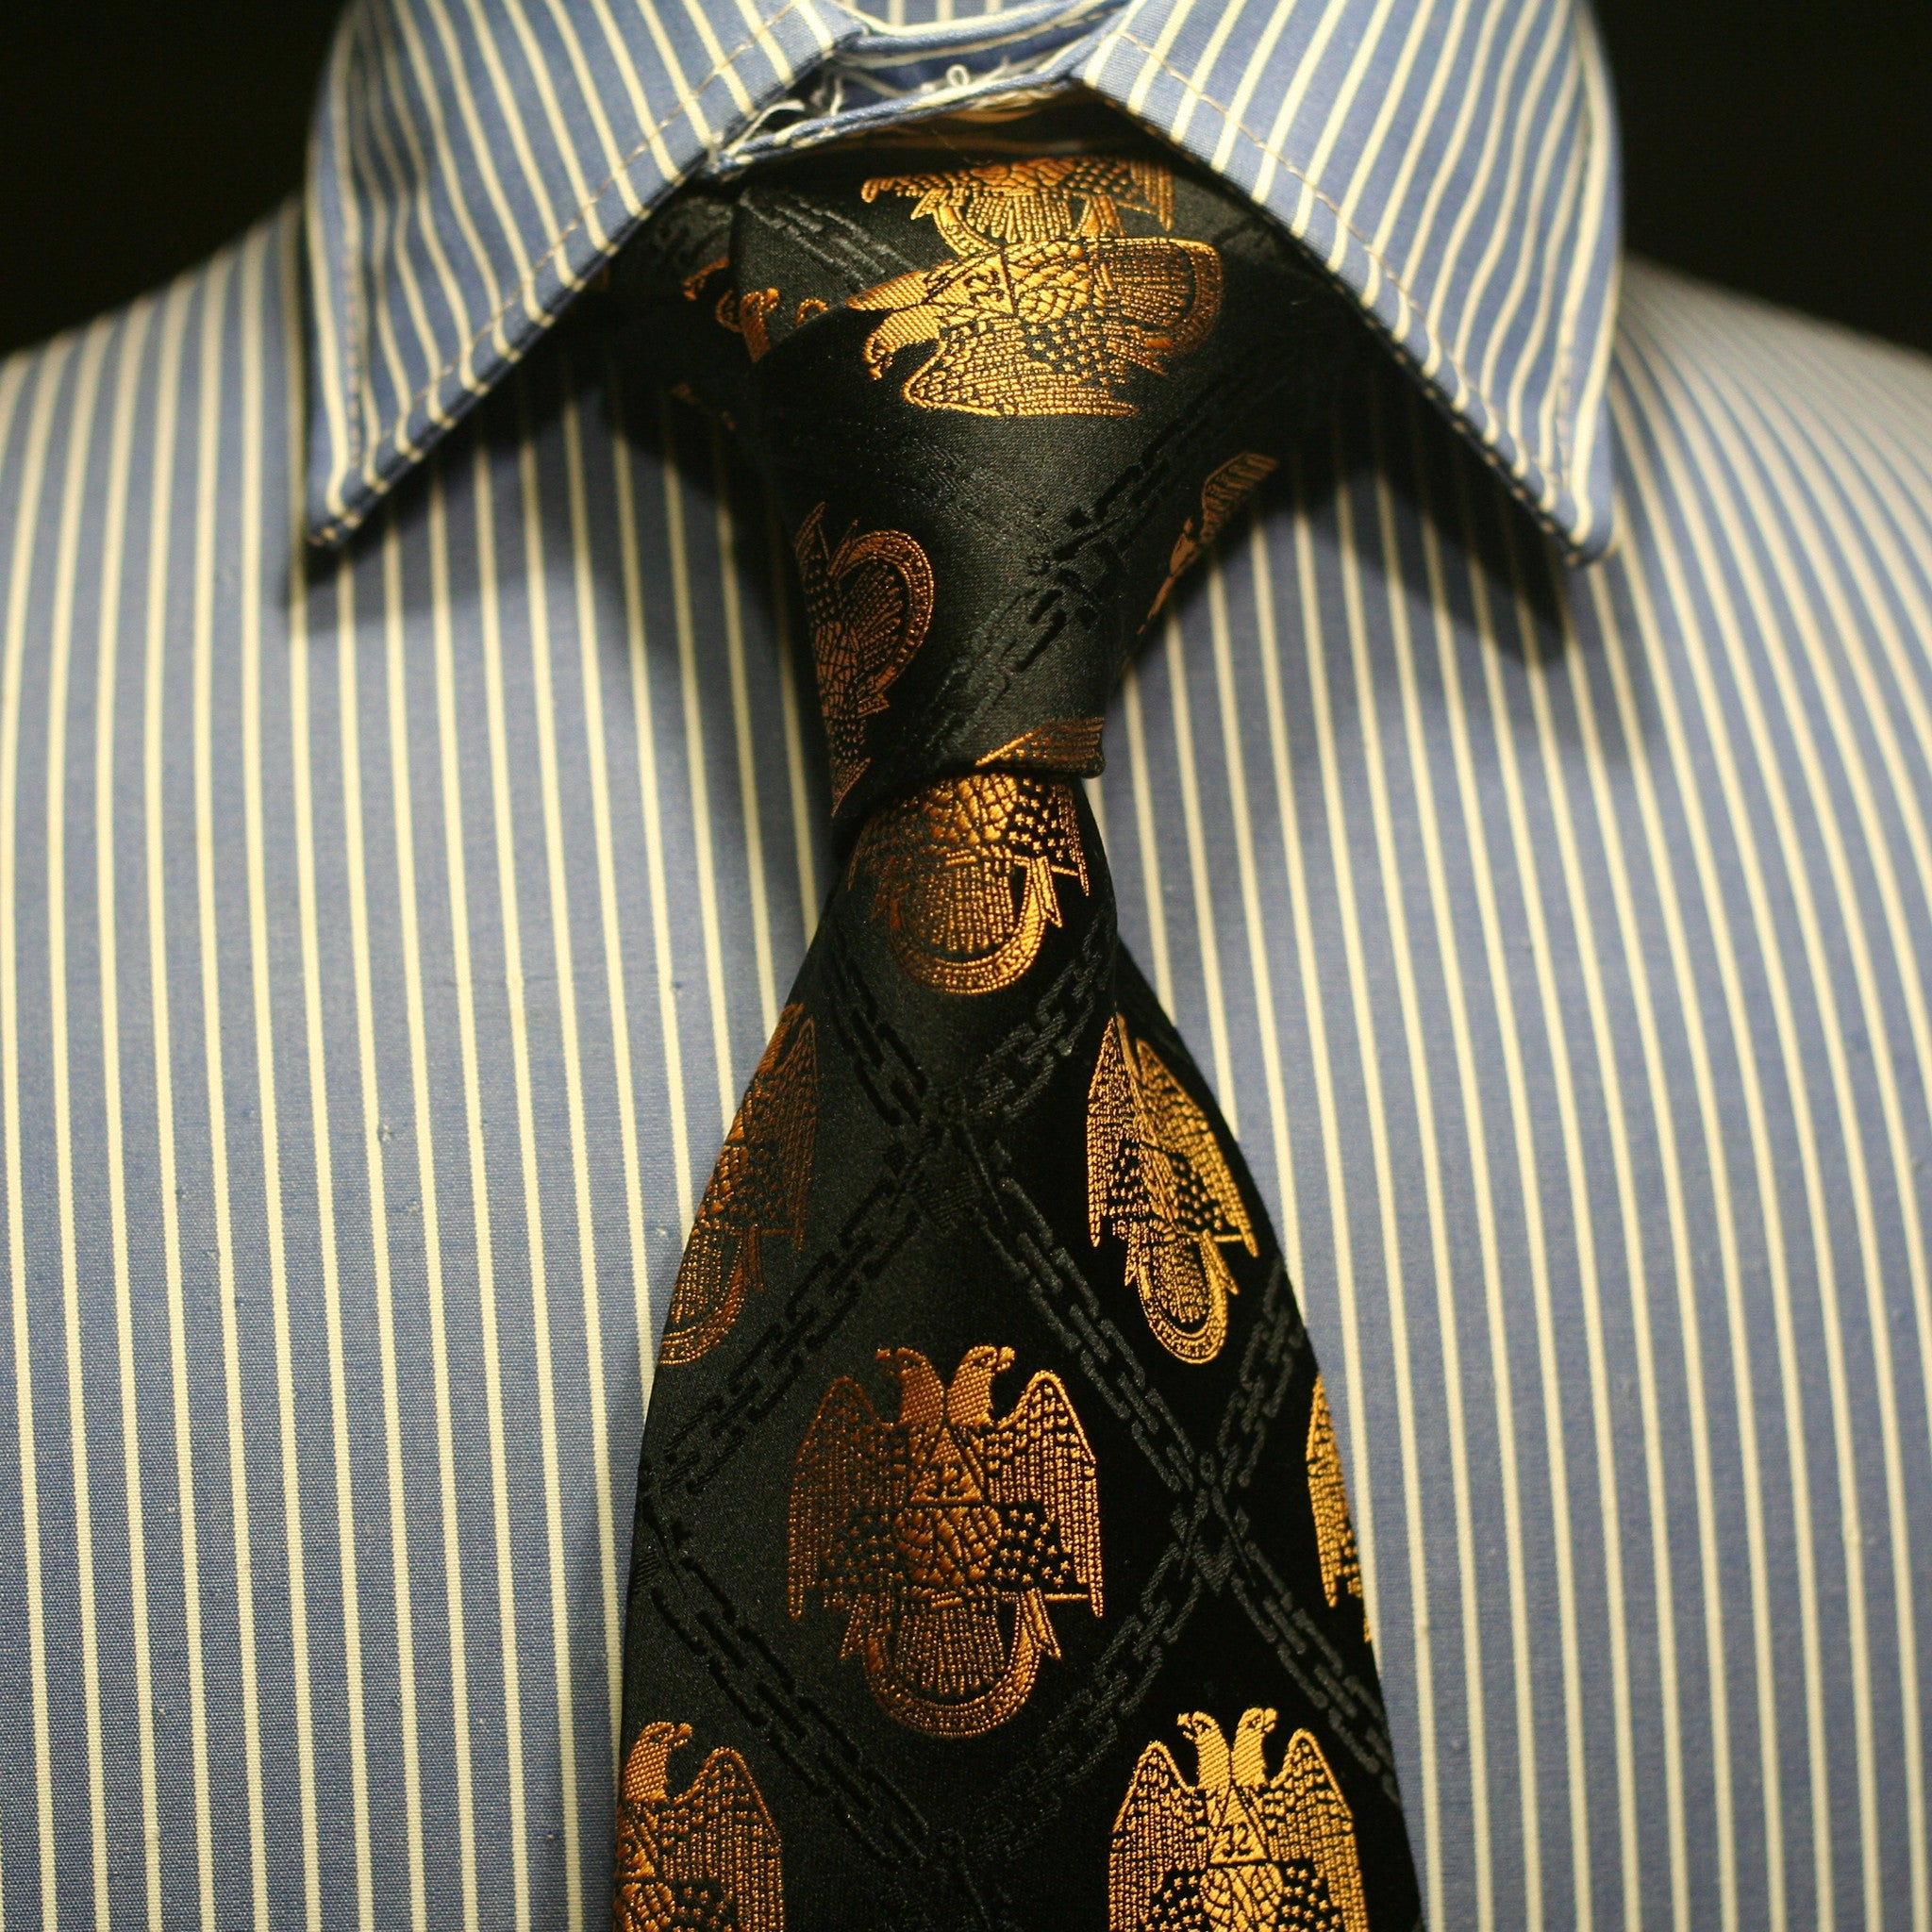 32nd Degree Scottish Rite necktie No. 1